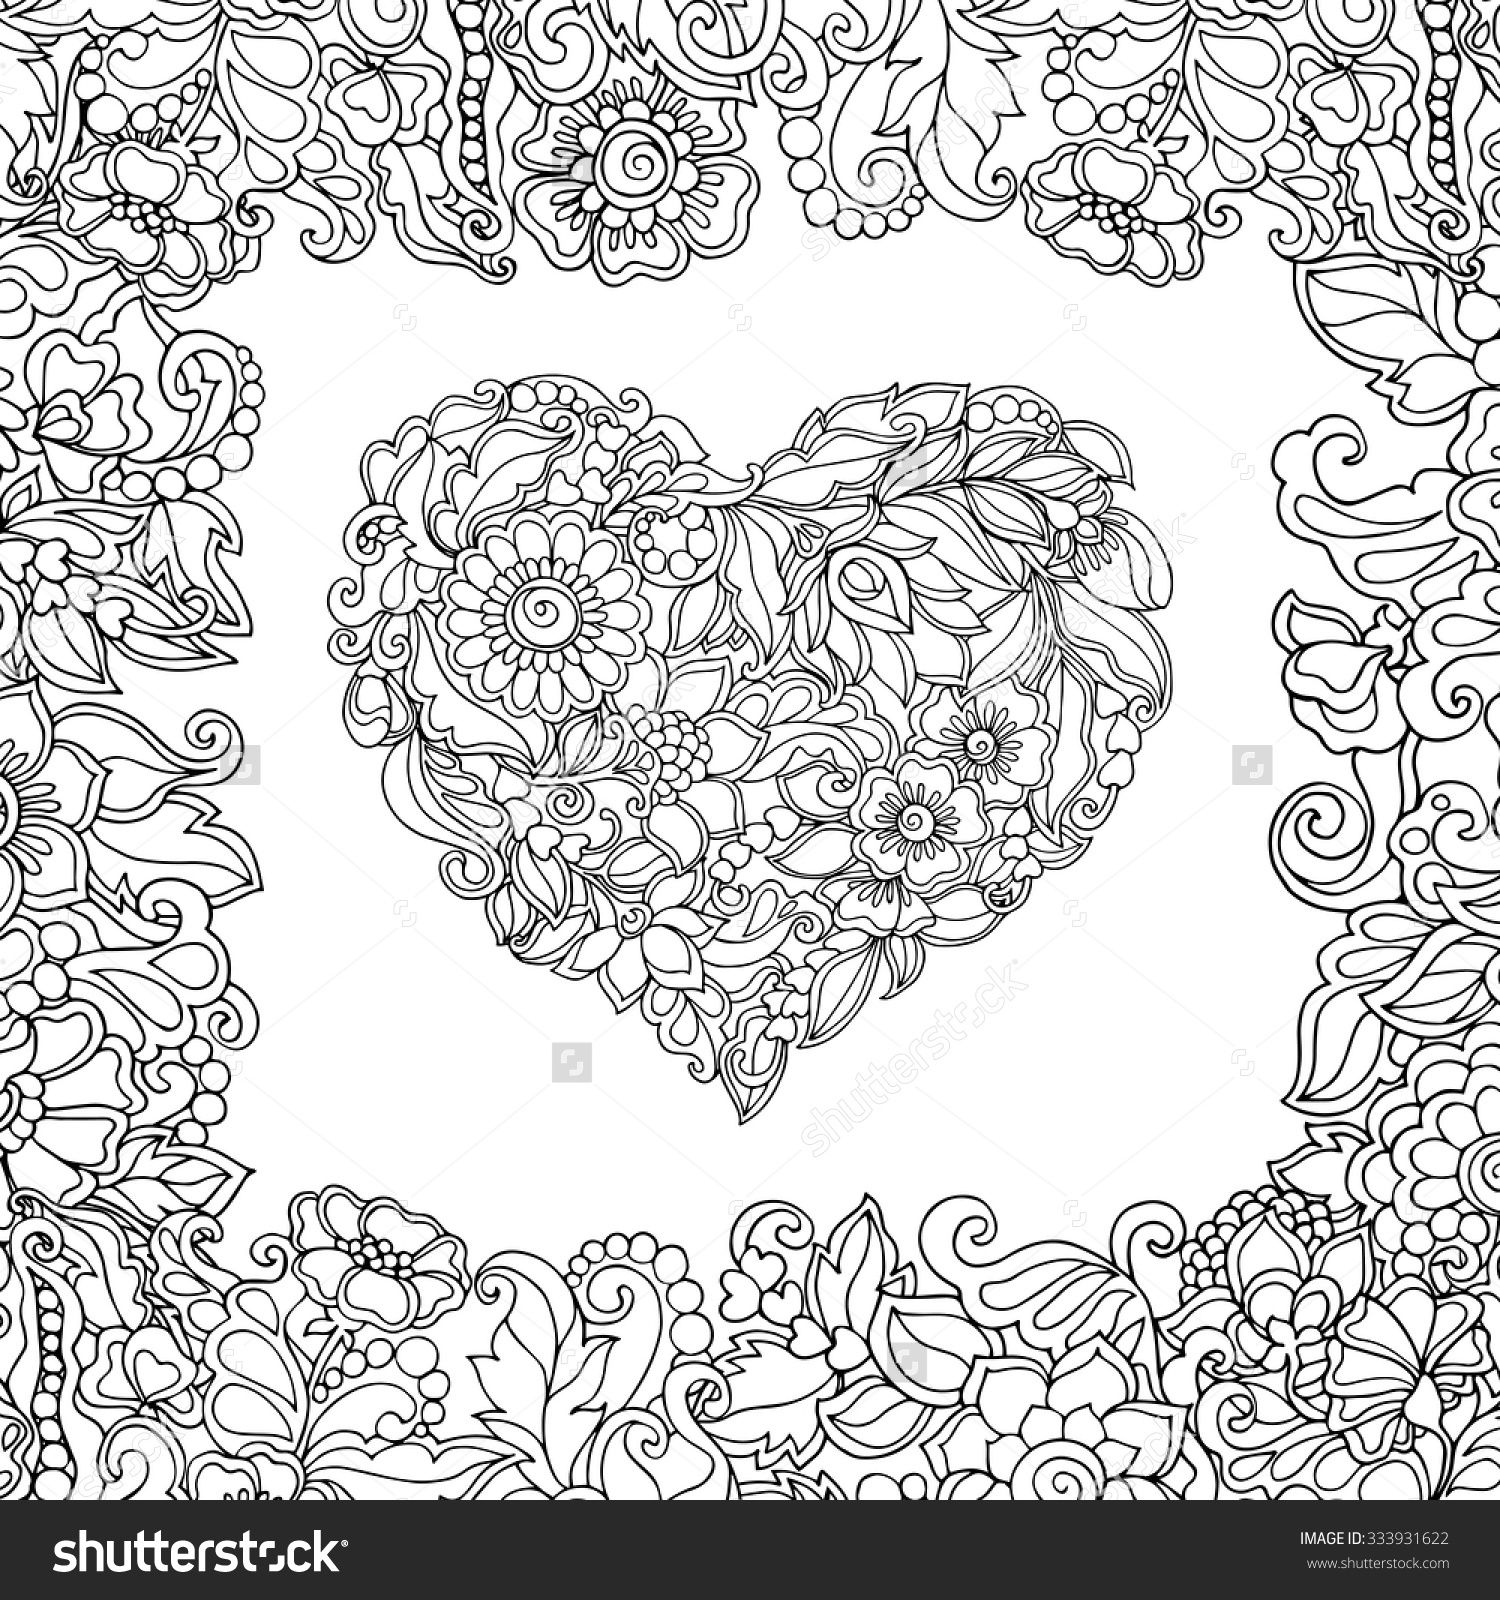 Christmas Coloring Pages For Older Students With Image Result Adult Colouring 4 Adults